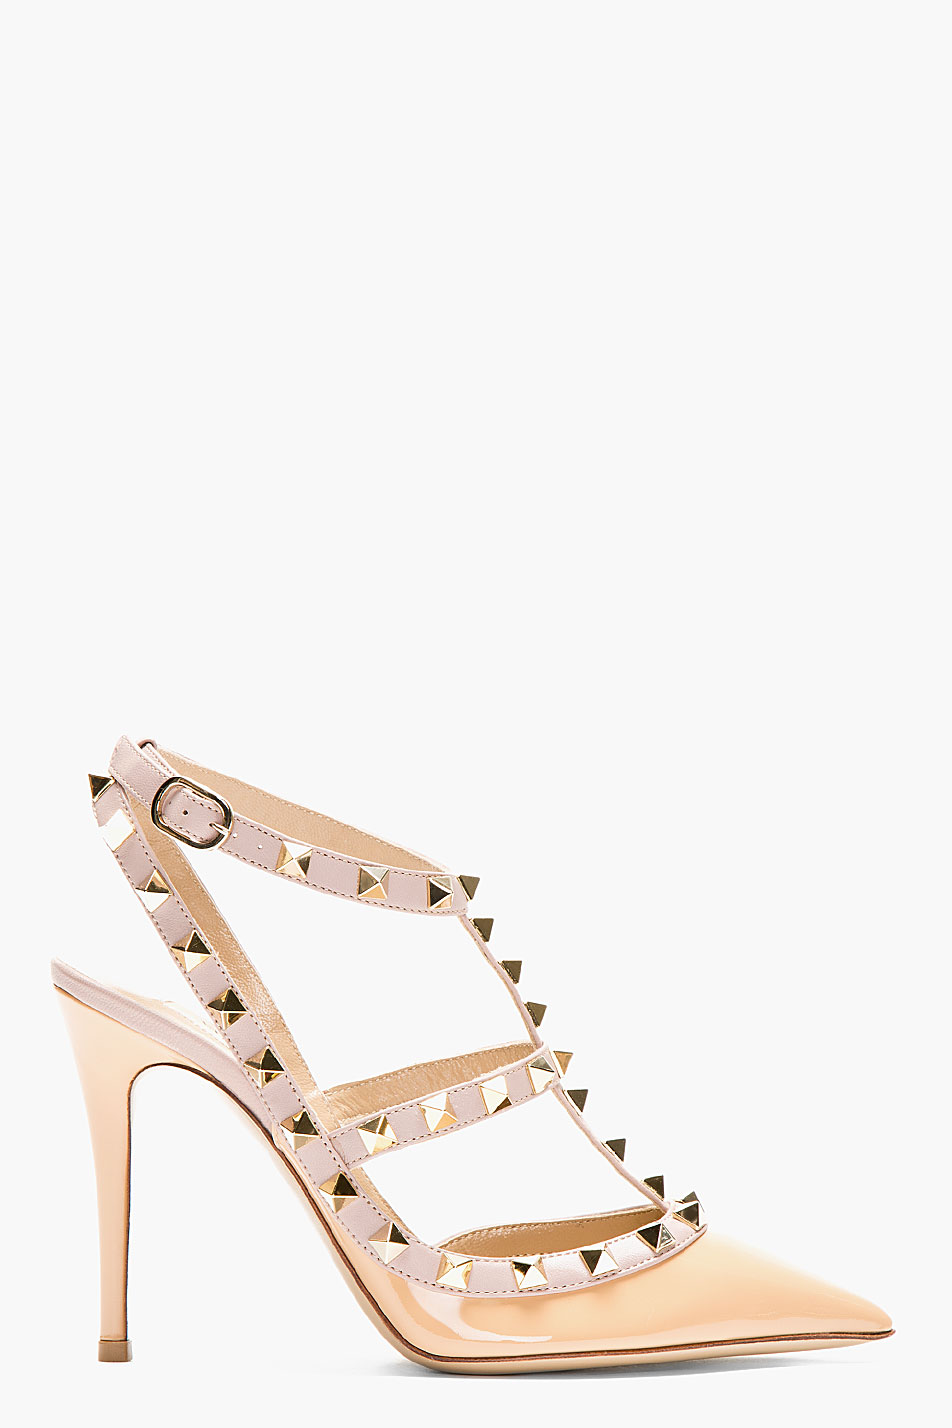 Valentino beige and taupe leather studded rockstud slingbacks in natural lyst - Beige slaapkamer taupe ...